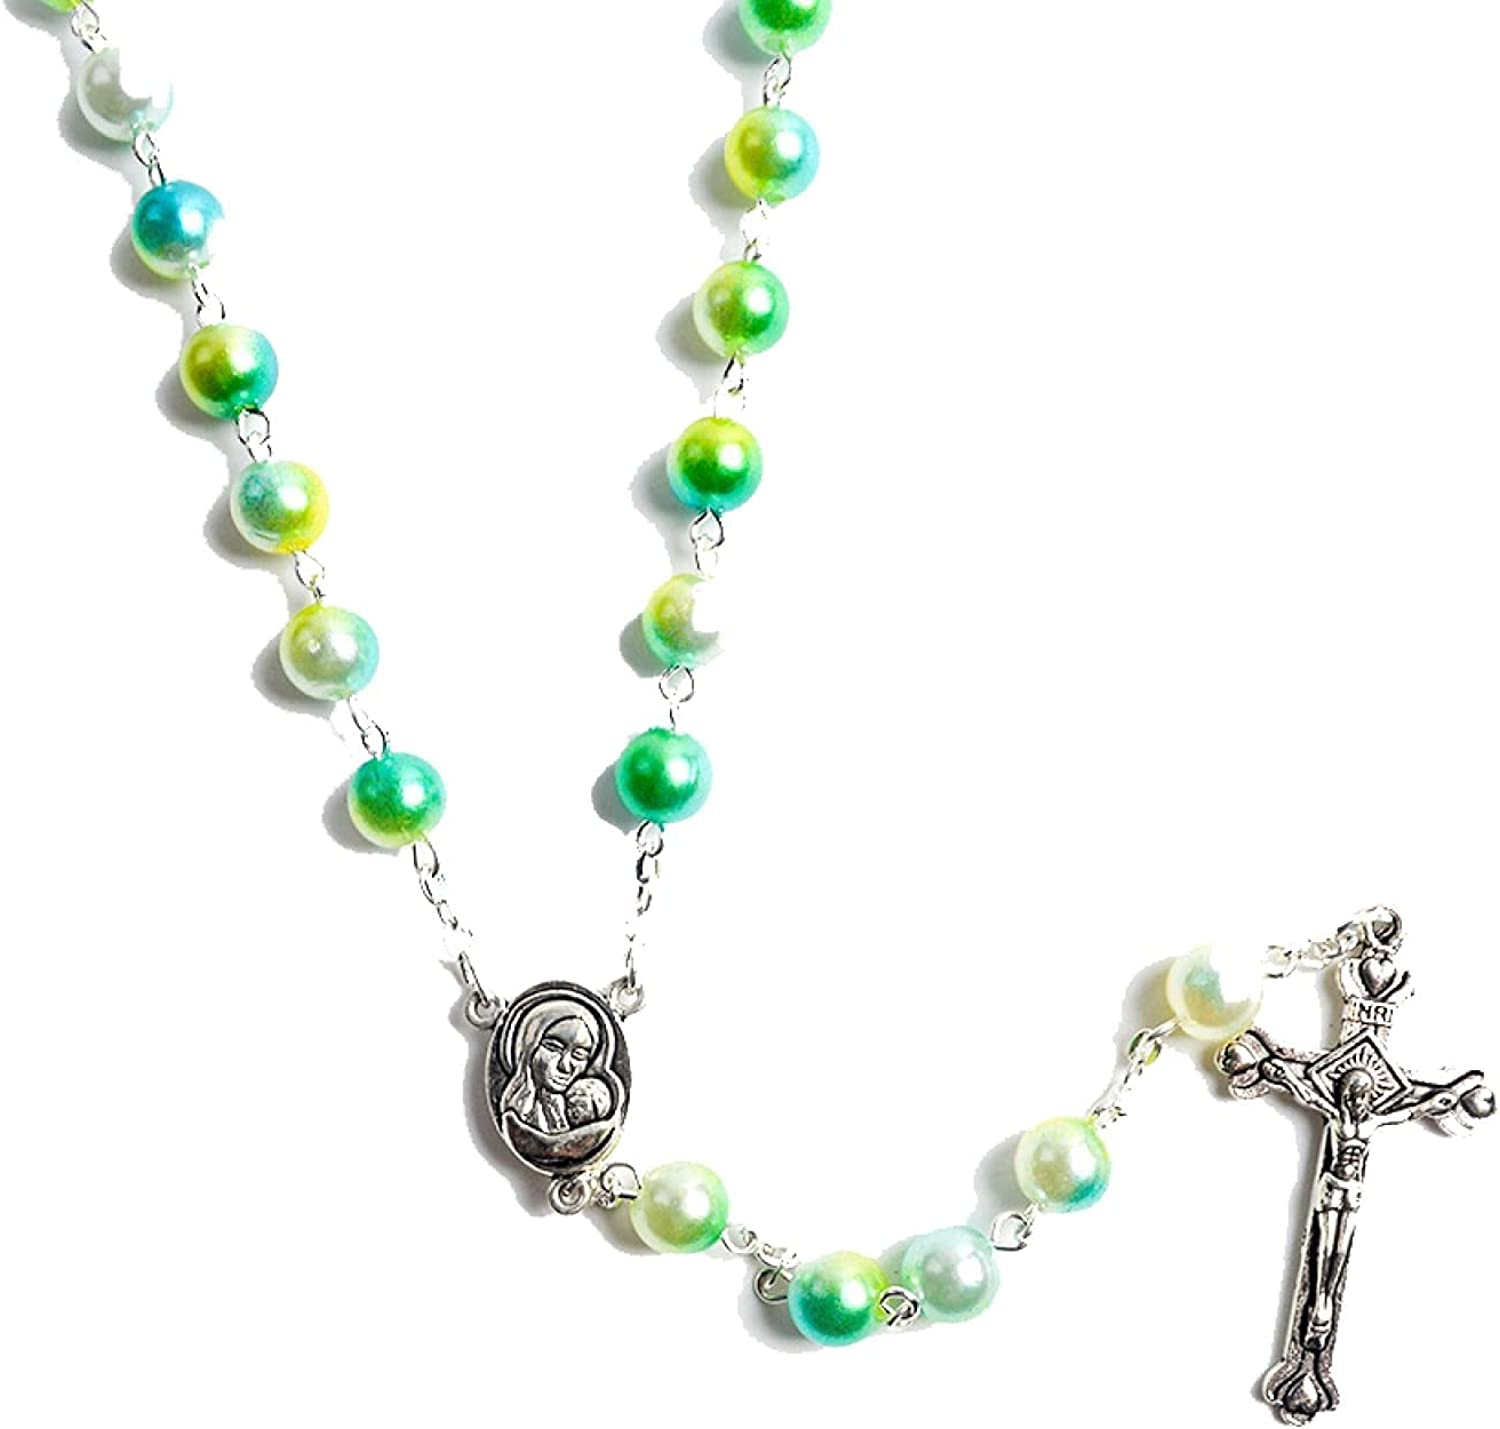 Fashion Handmade Multicolor Pearl Rosary Beads Necklace With Alloy Chaion Catholic Cross Pendant Charm Women